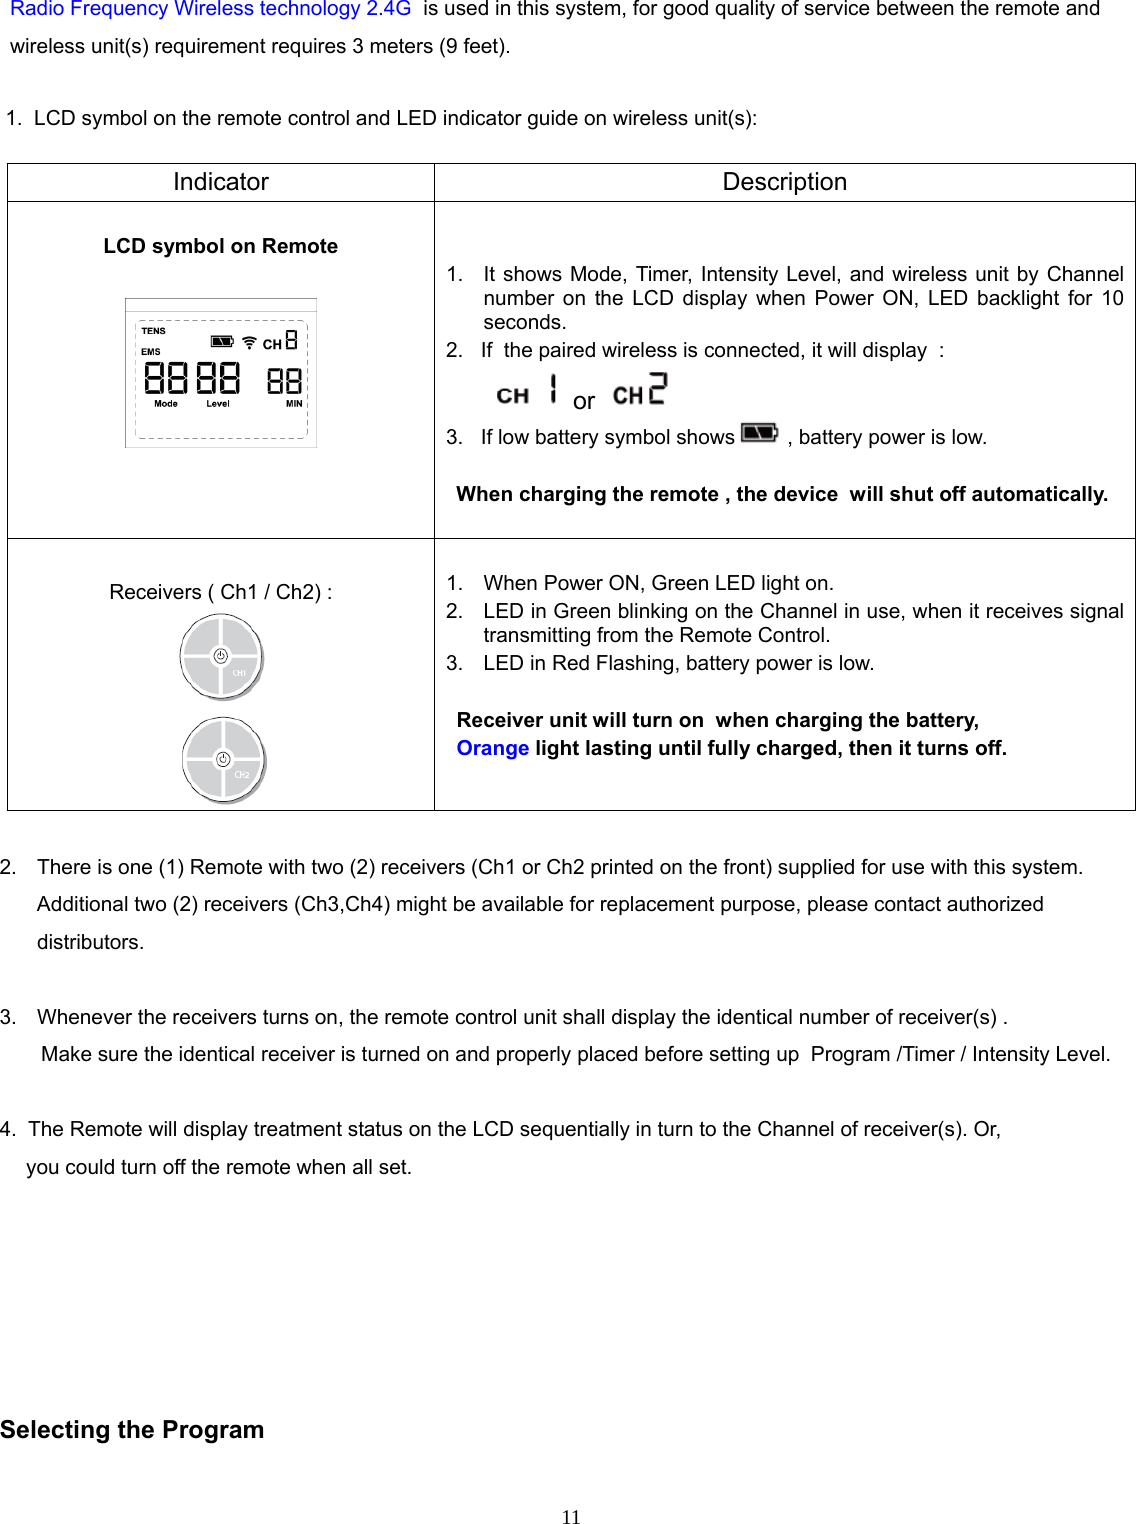 Diy Front Led Signal Lights Page 11 Manual Guide